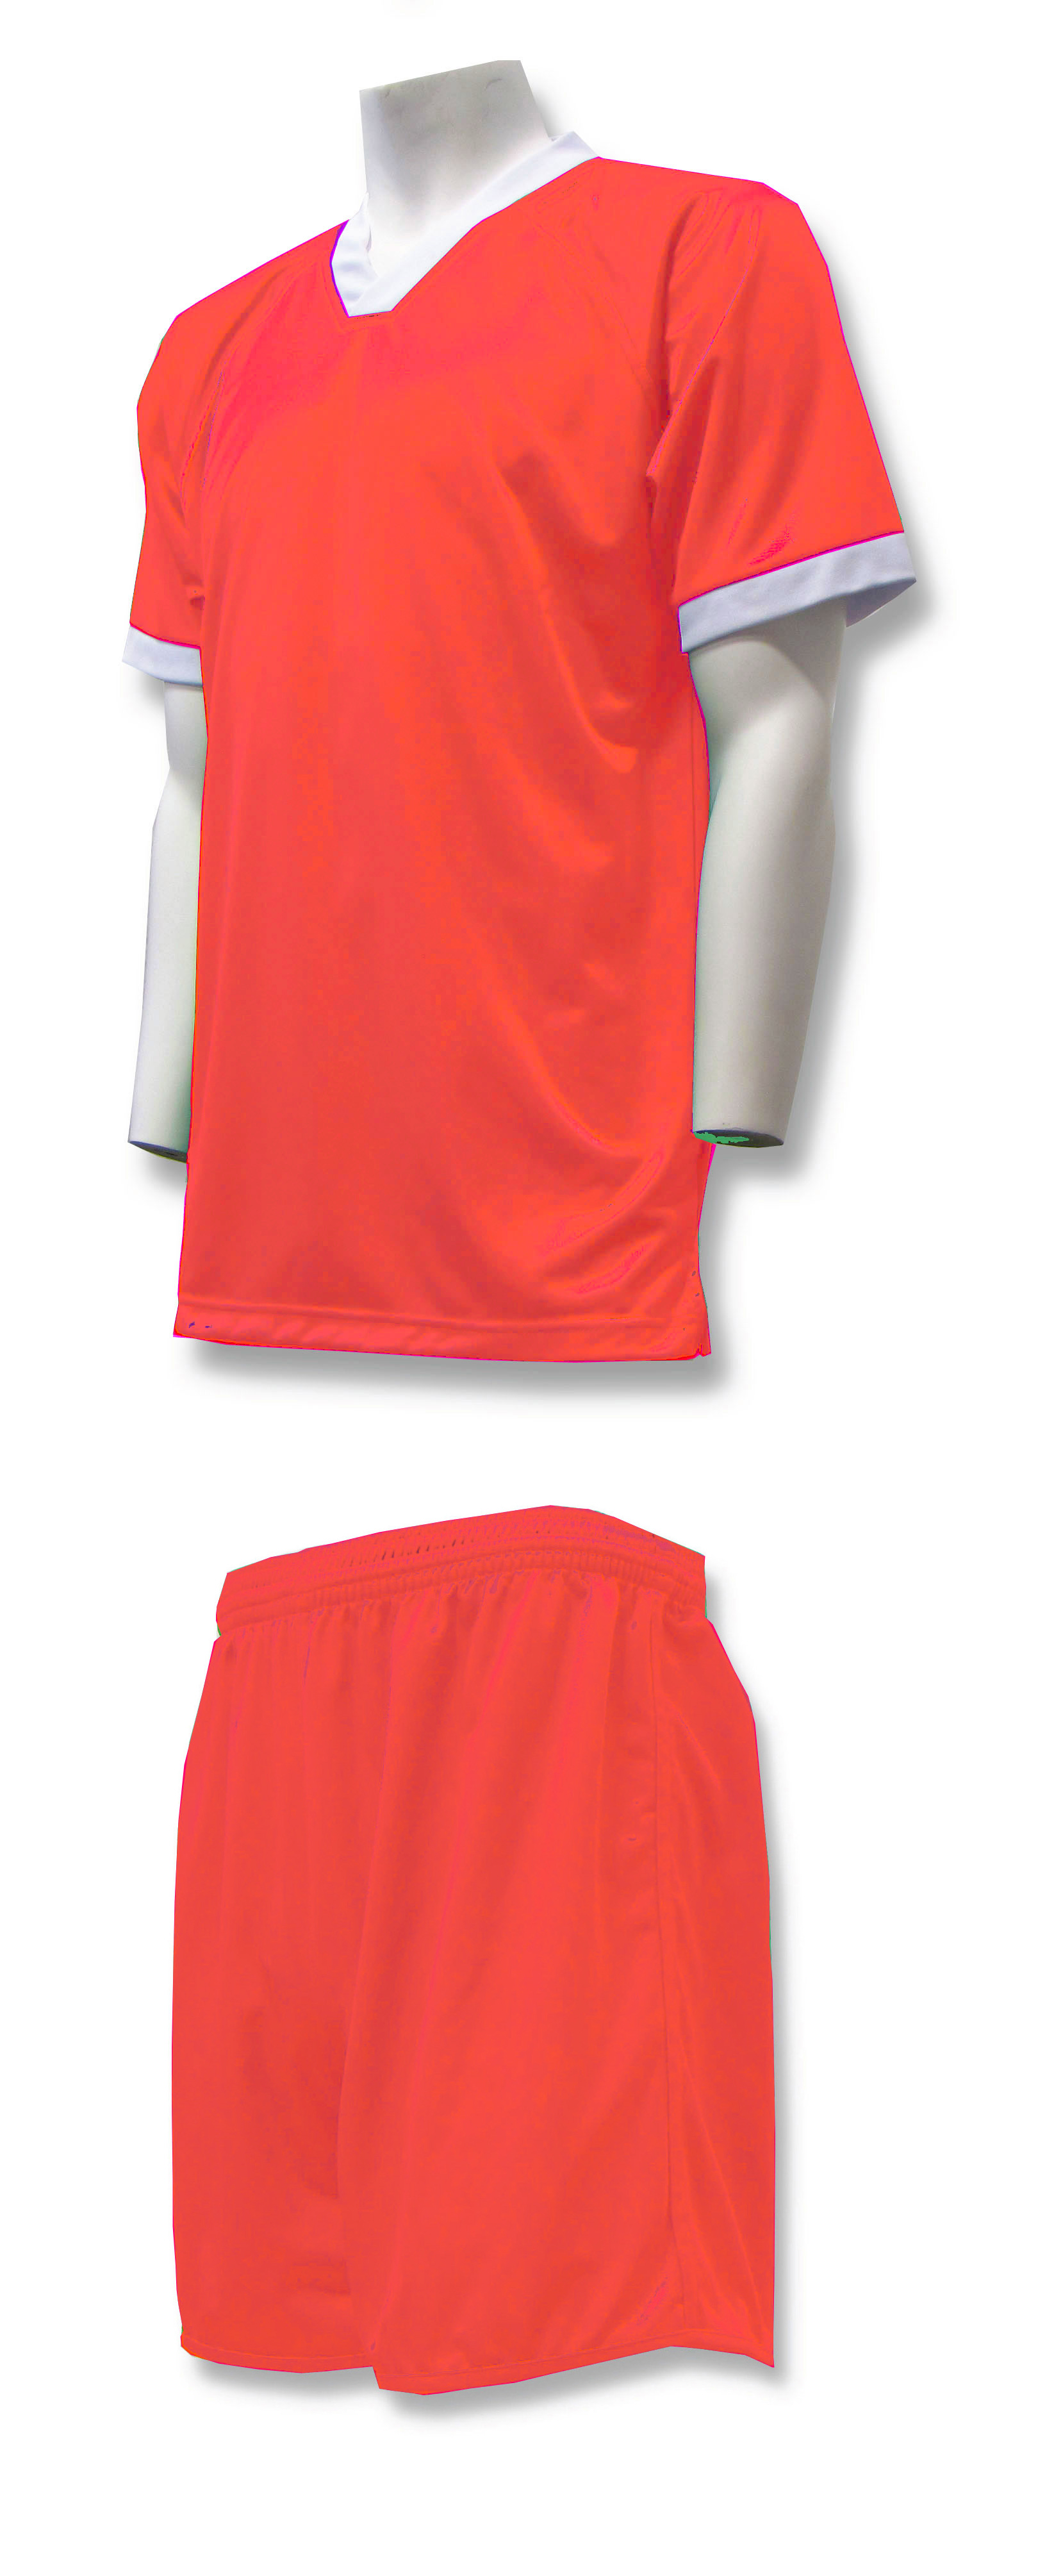 Forza soccer uniform kit in orange by Code Four Athletics